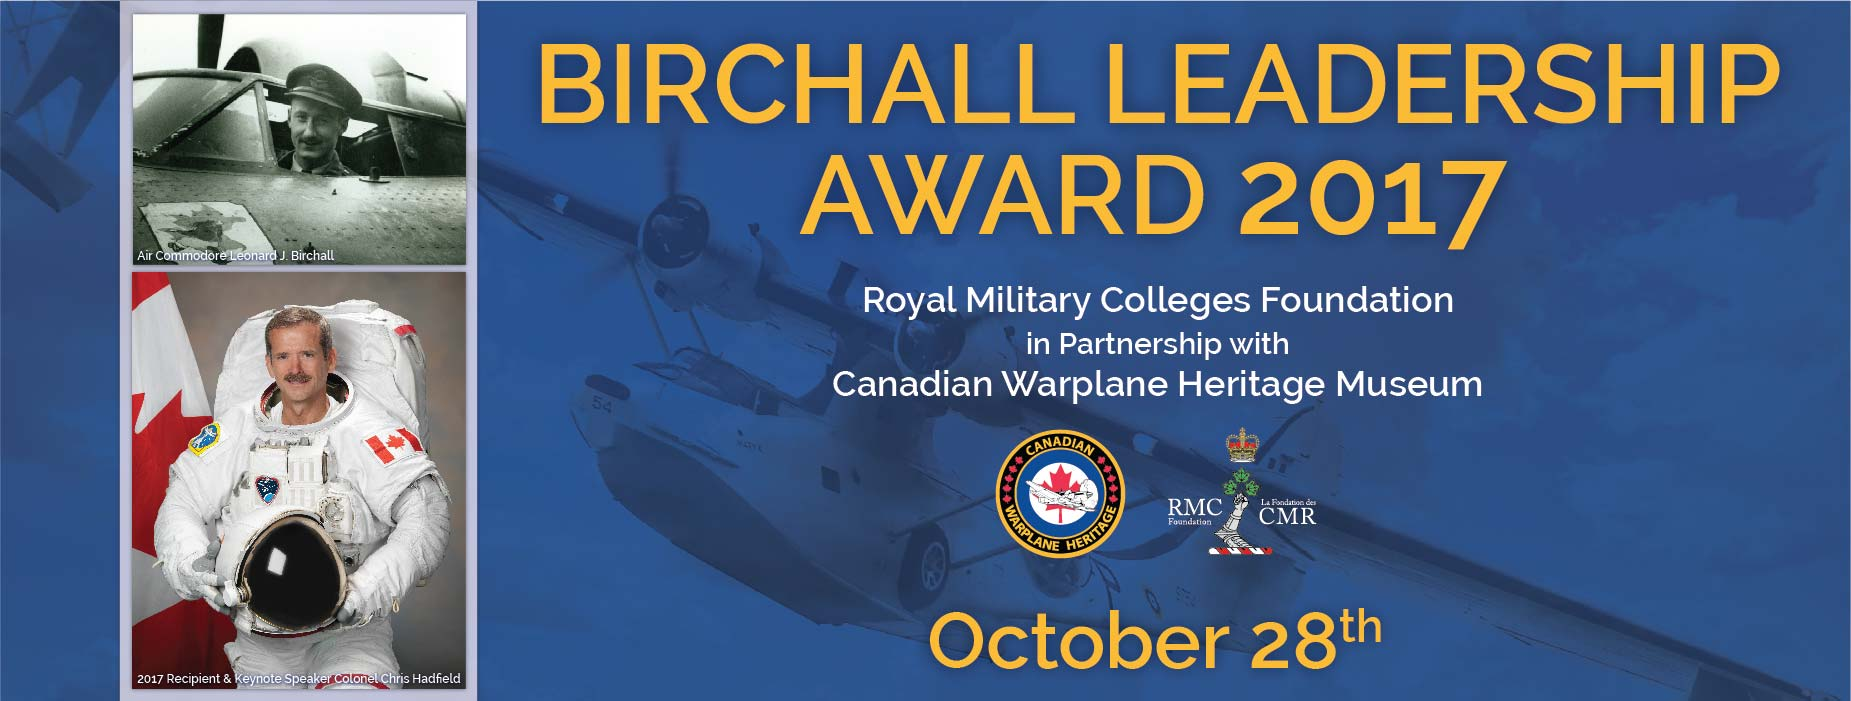 Banner Image for the Birchall Leadership Award 2017 event